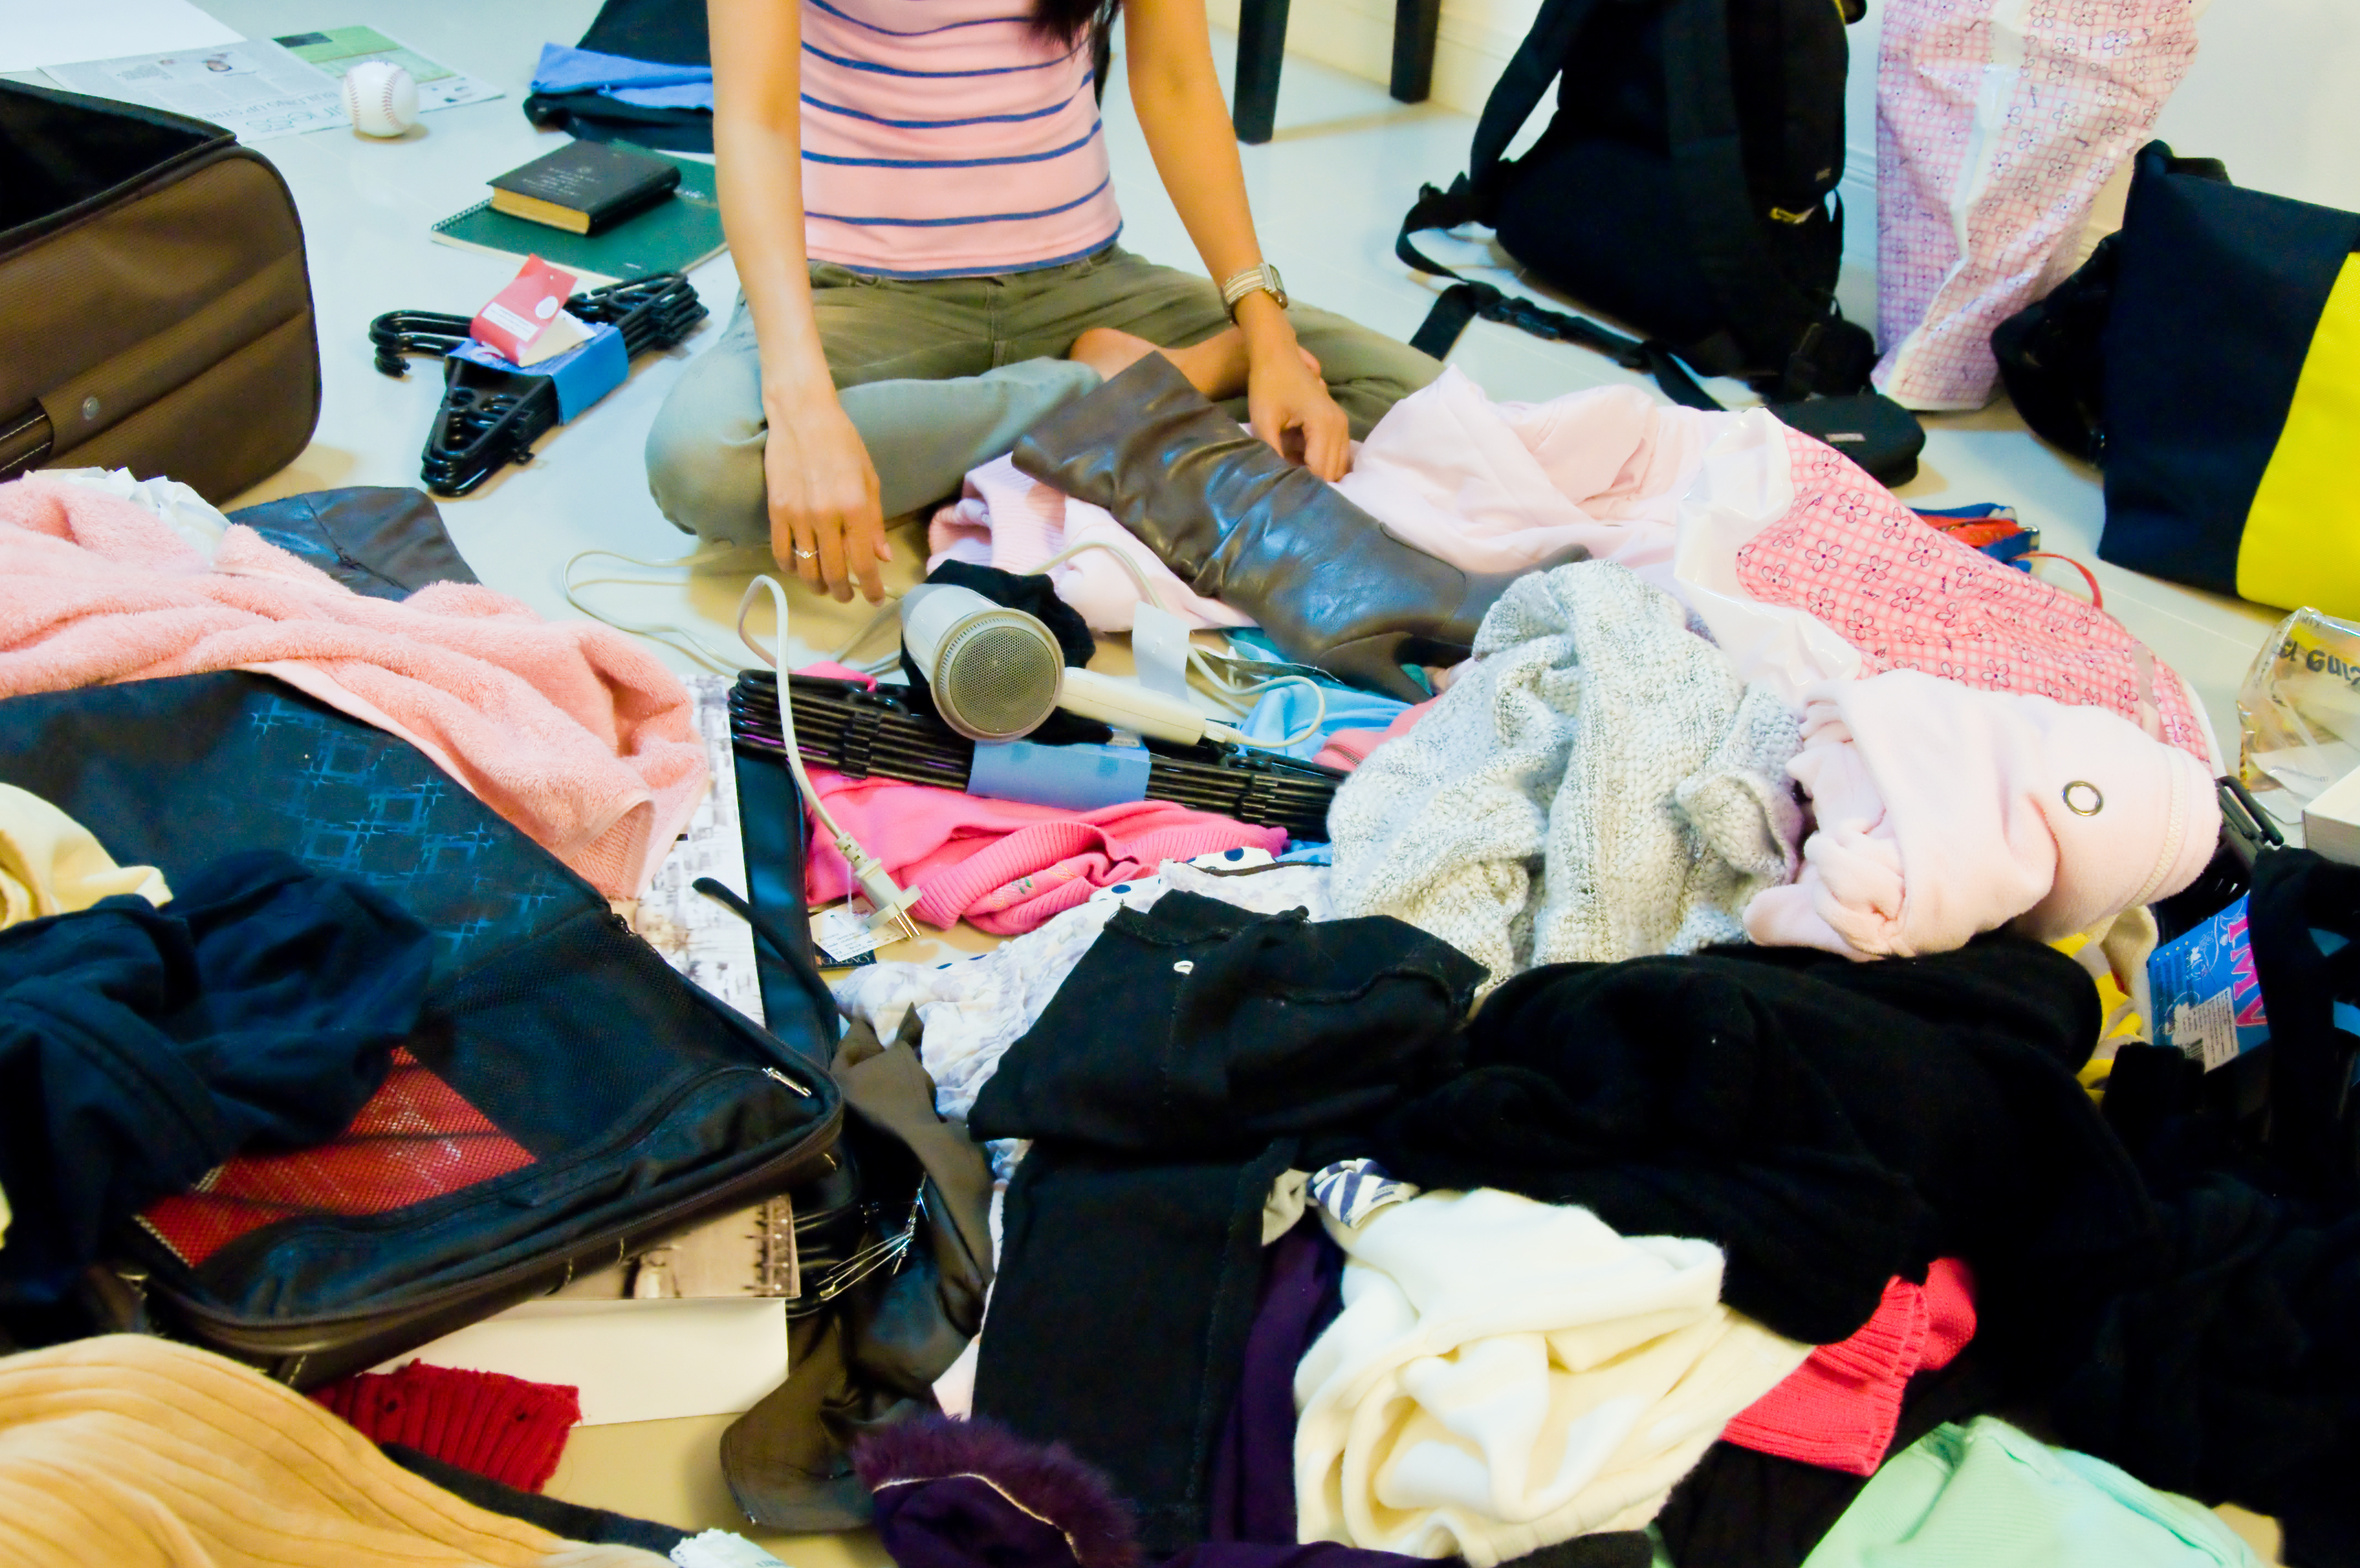 descriptive essay about a messy room